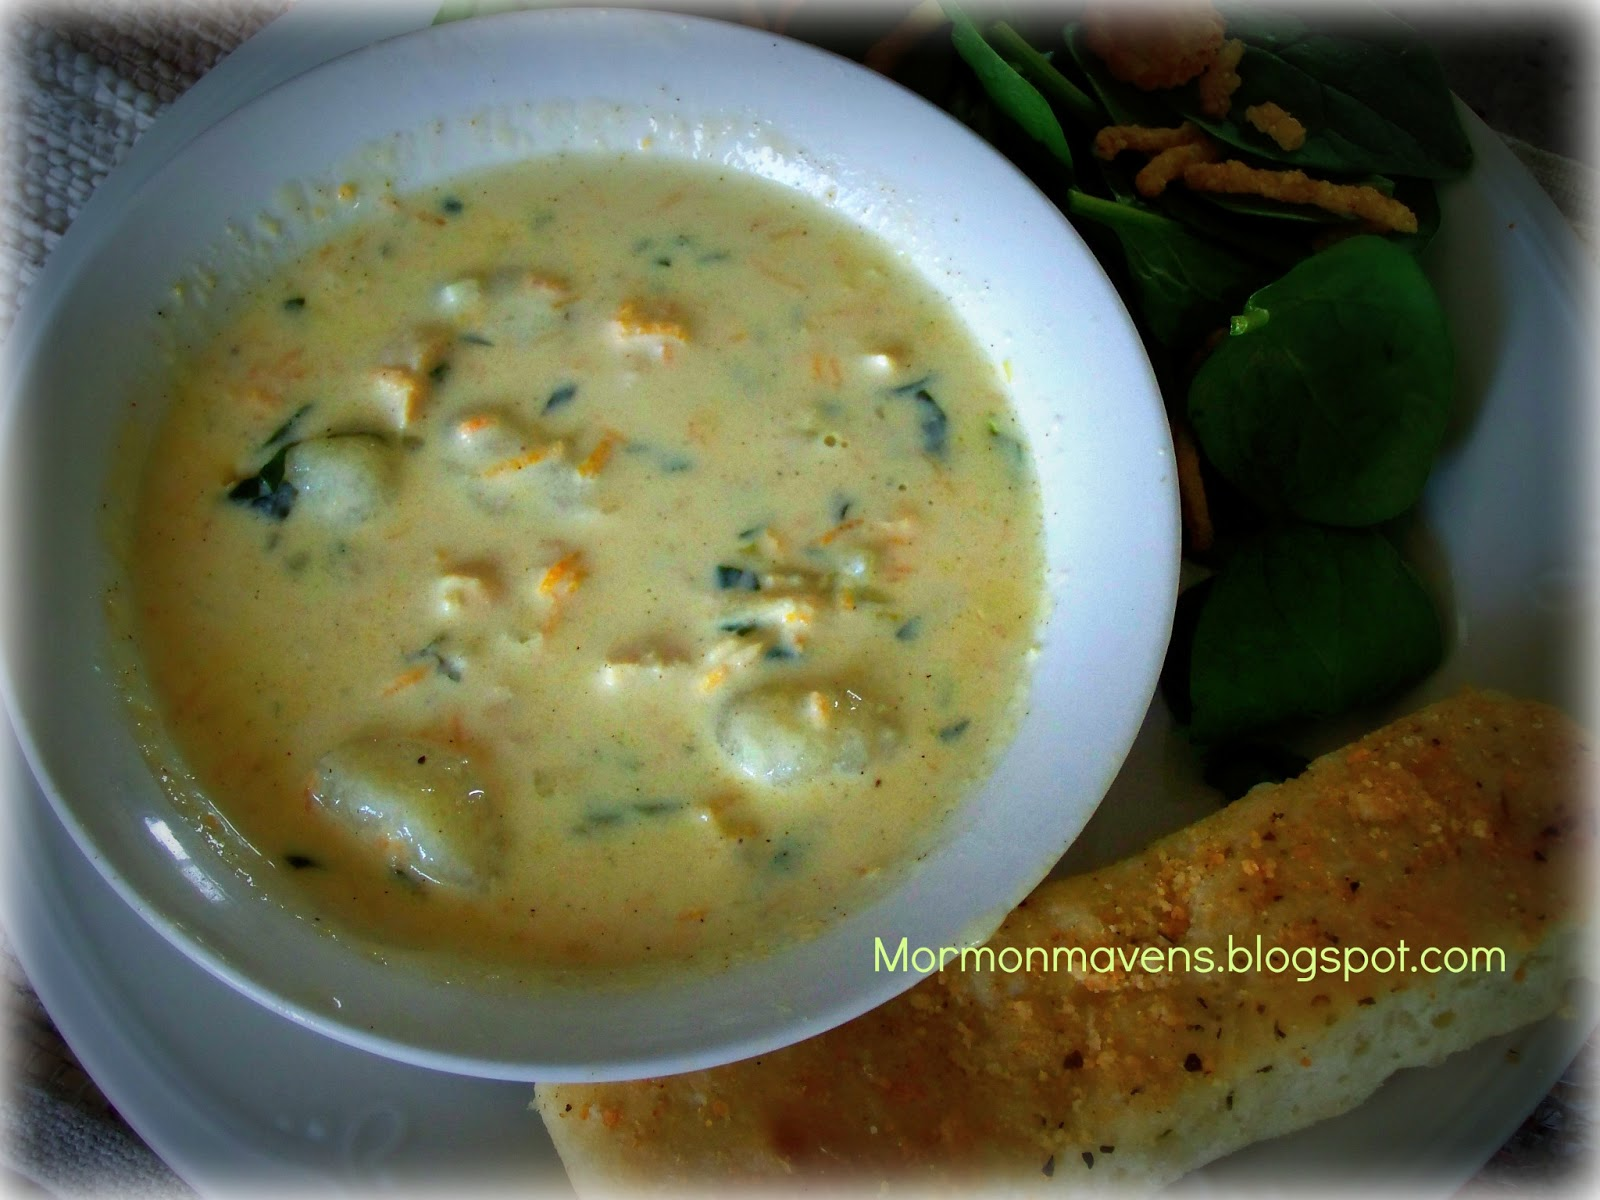 Chicken and gnocchi soup olive garden style mormon mavens Olive garden soups chicken gnocchi